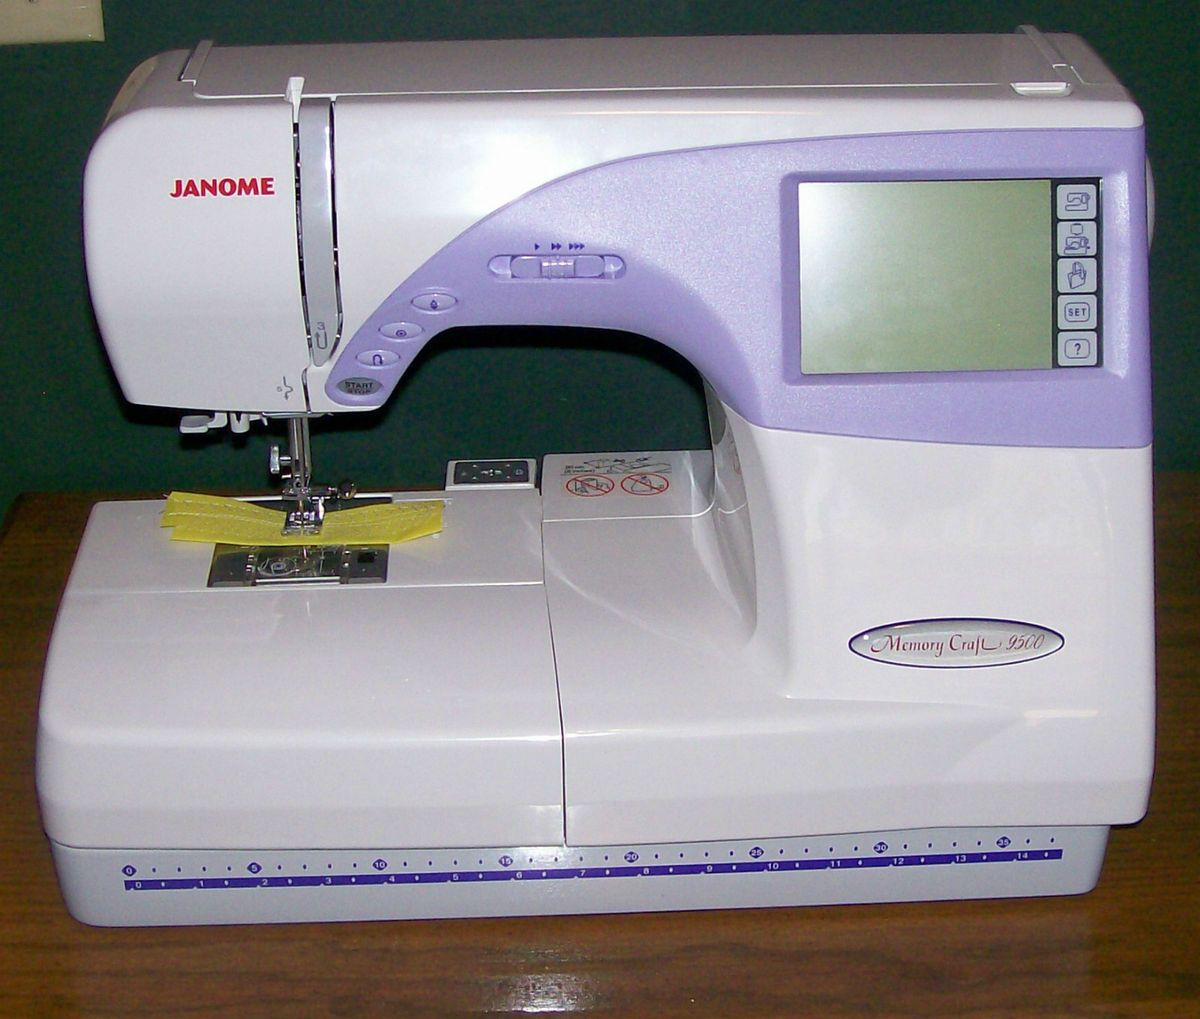 janome sewing embroidery machine 9500 memory craft all